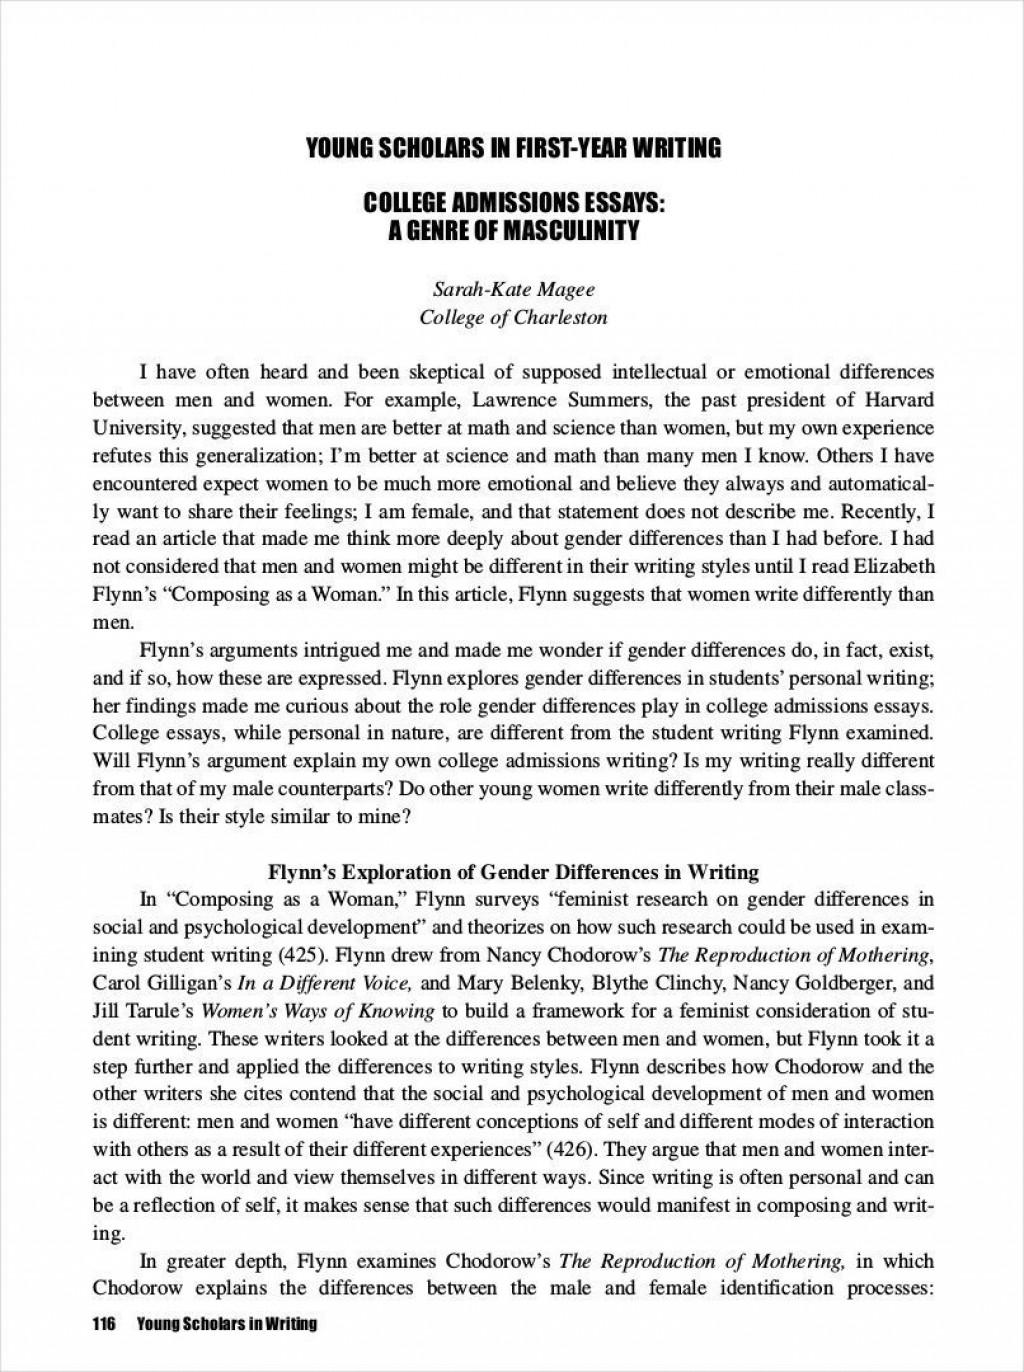 007 Incredible College Essay Format Example Highest Clarity  Examples Writing Application Sample AdmissionLarge